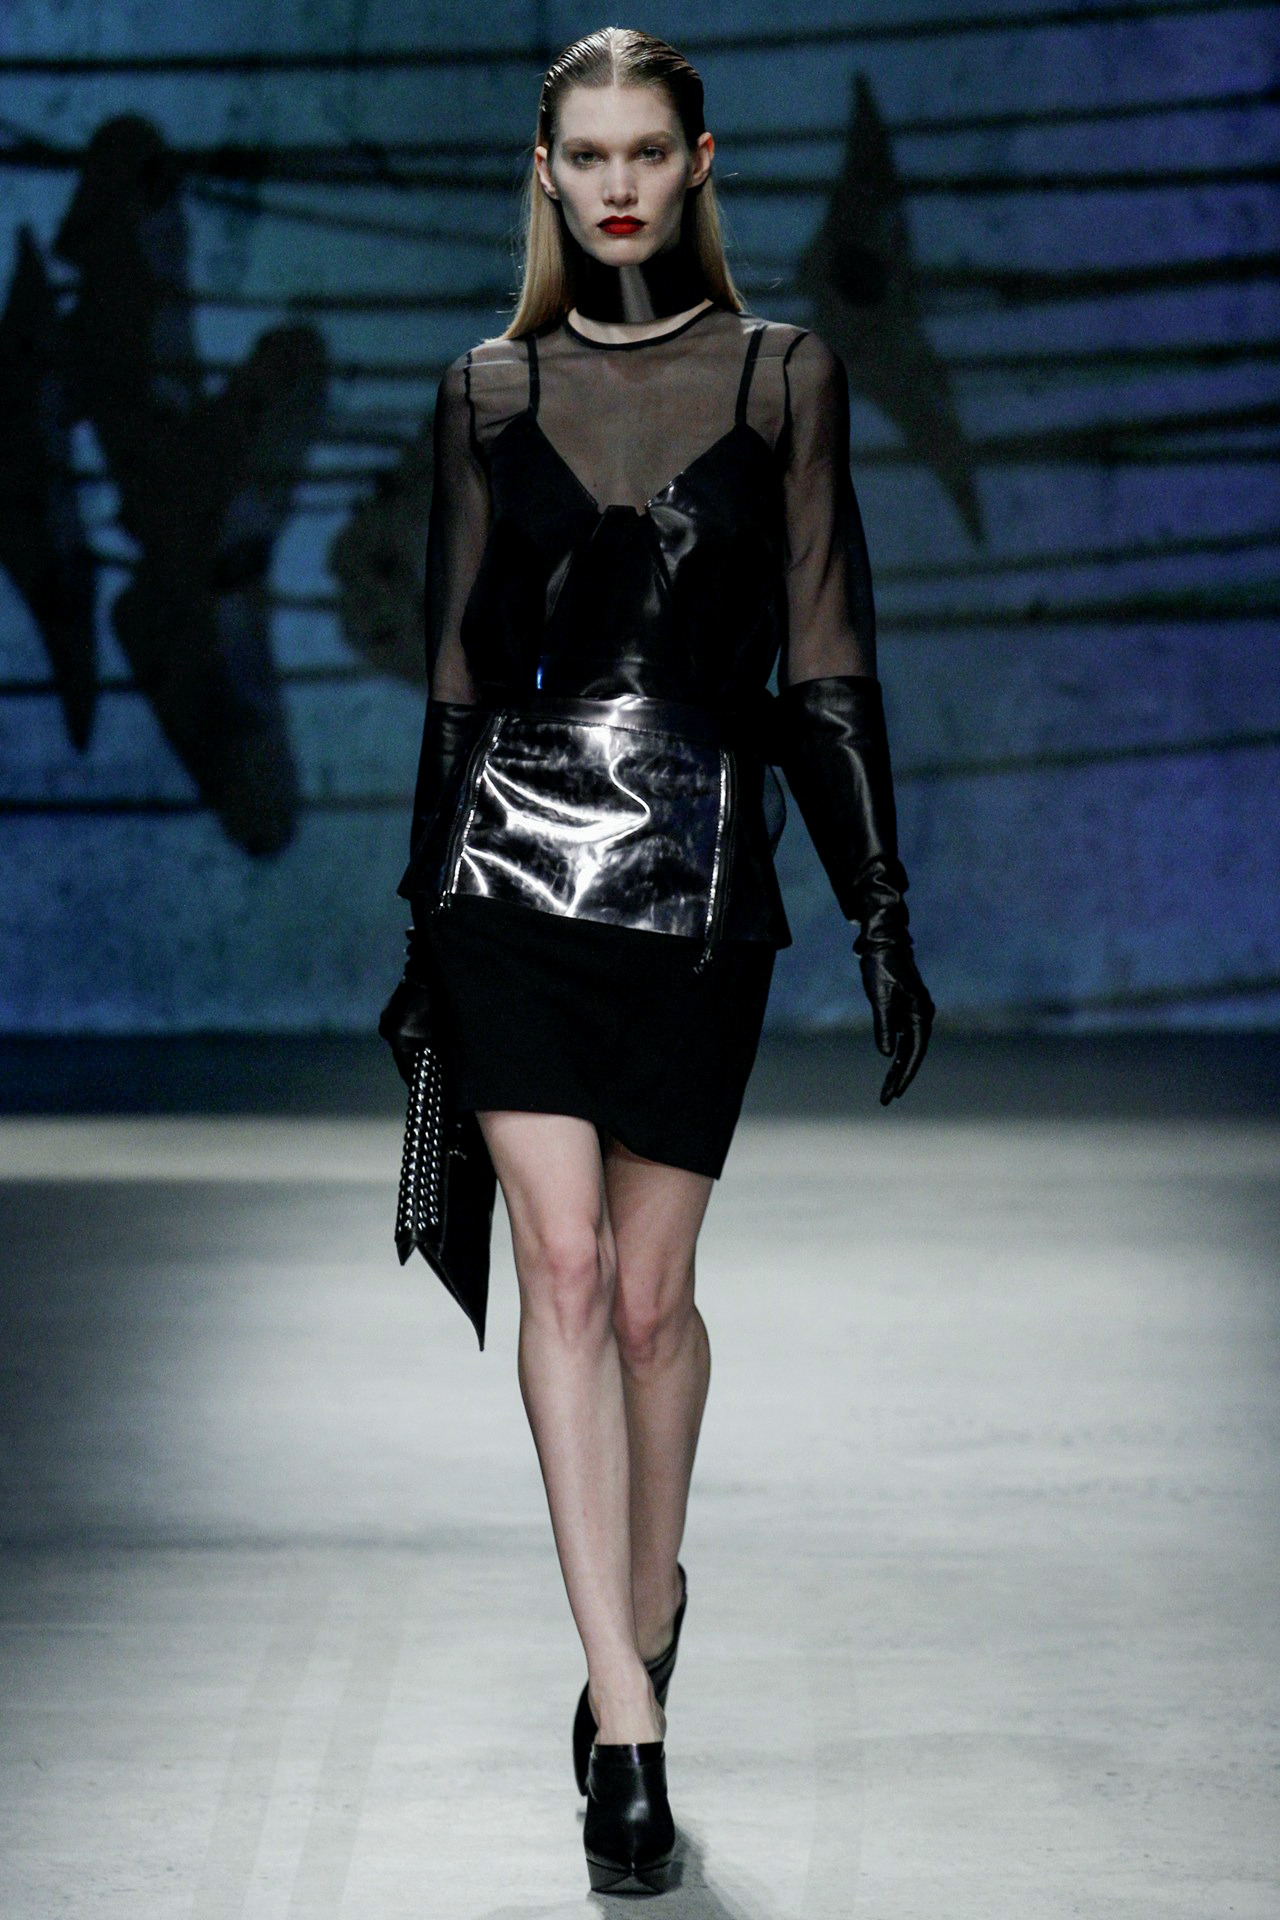 Kenneth Cole Fall/Winter 2013